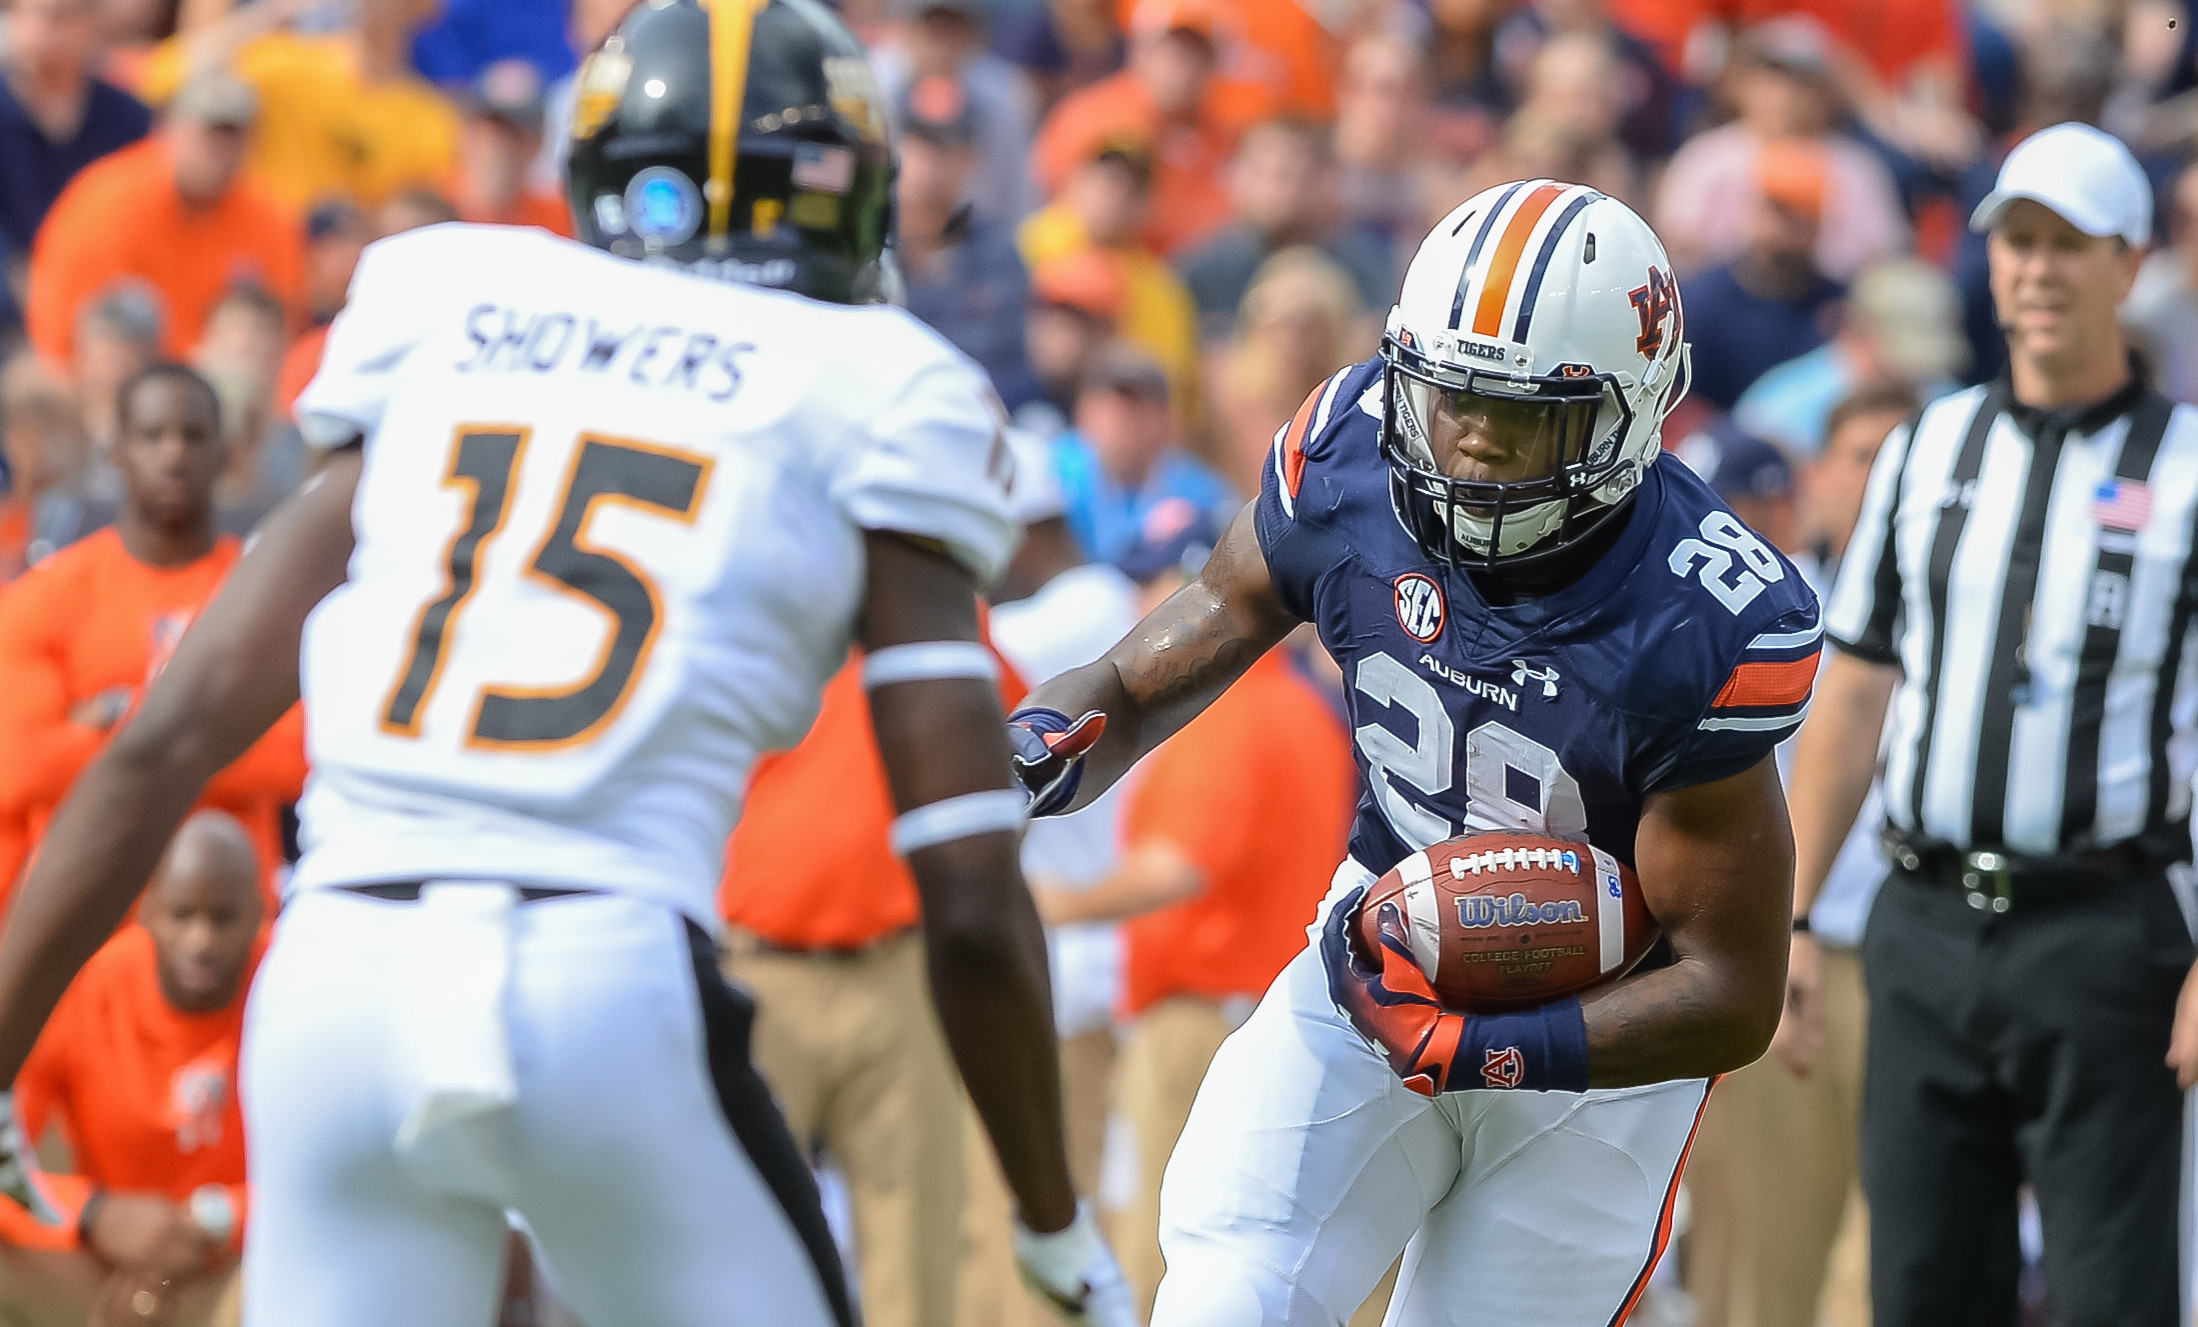 Auburn Tigers running back JaTarvious Whitlow (28) runs during the first half of Saturday's game, at Jordan Hare Stadium in Auburn AL. Daily Mountain Eagle -  Jeff Johnsey